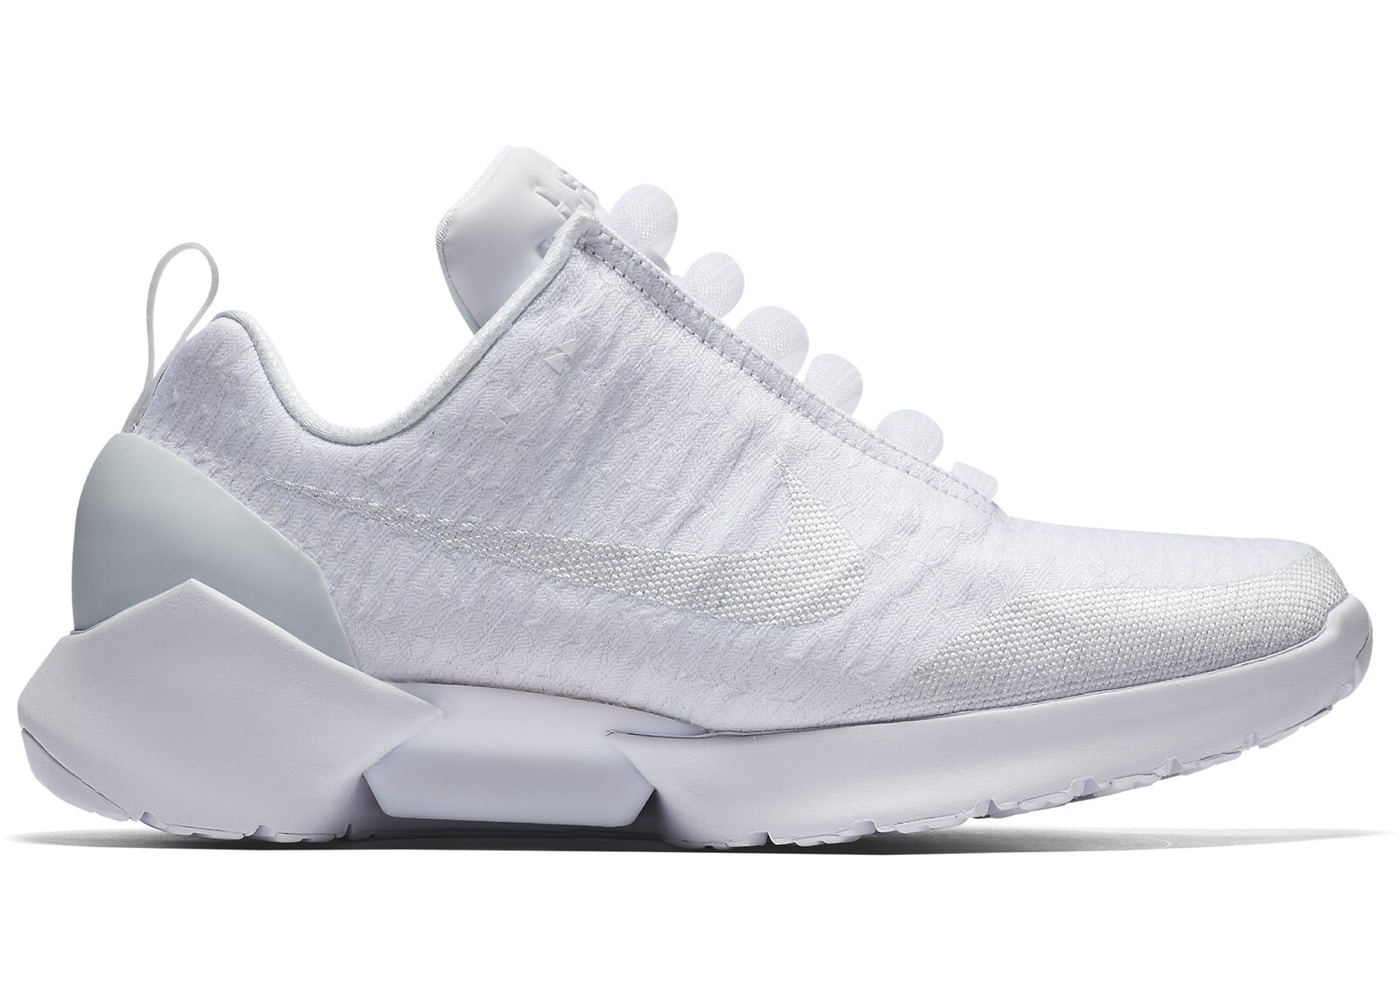 68d093d1ffcc9 Sell. or Ask. Size: 12. View All Bids. Nike HyperAdapt 1.0 White ...